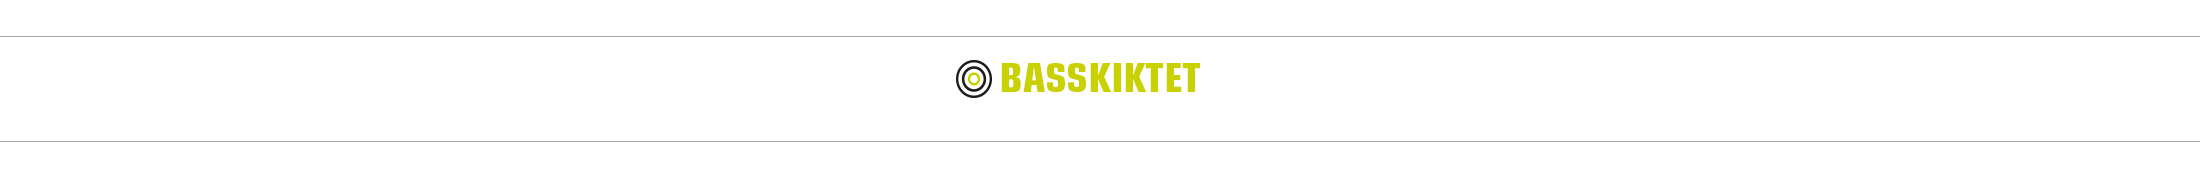 Basskiktet - fukttransport